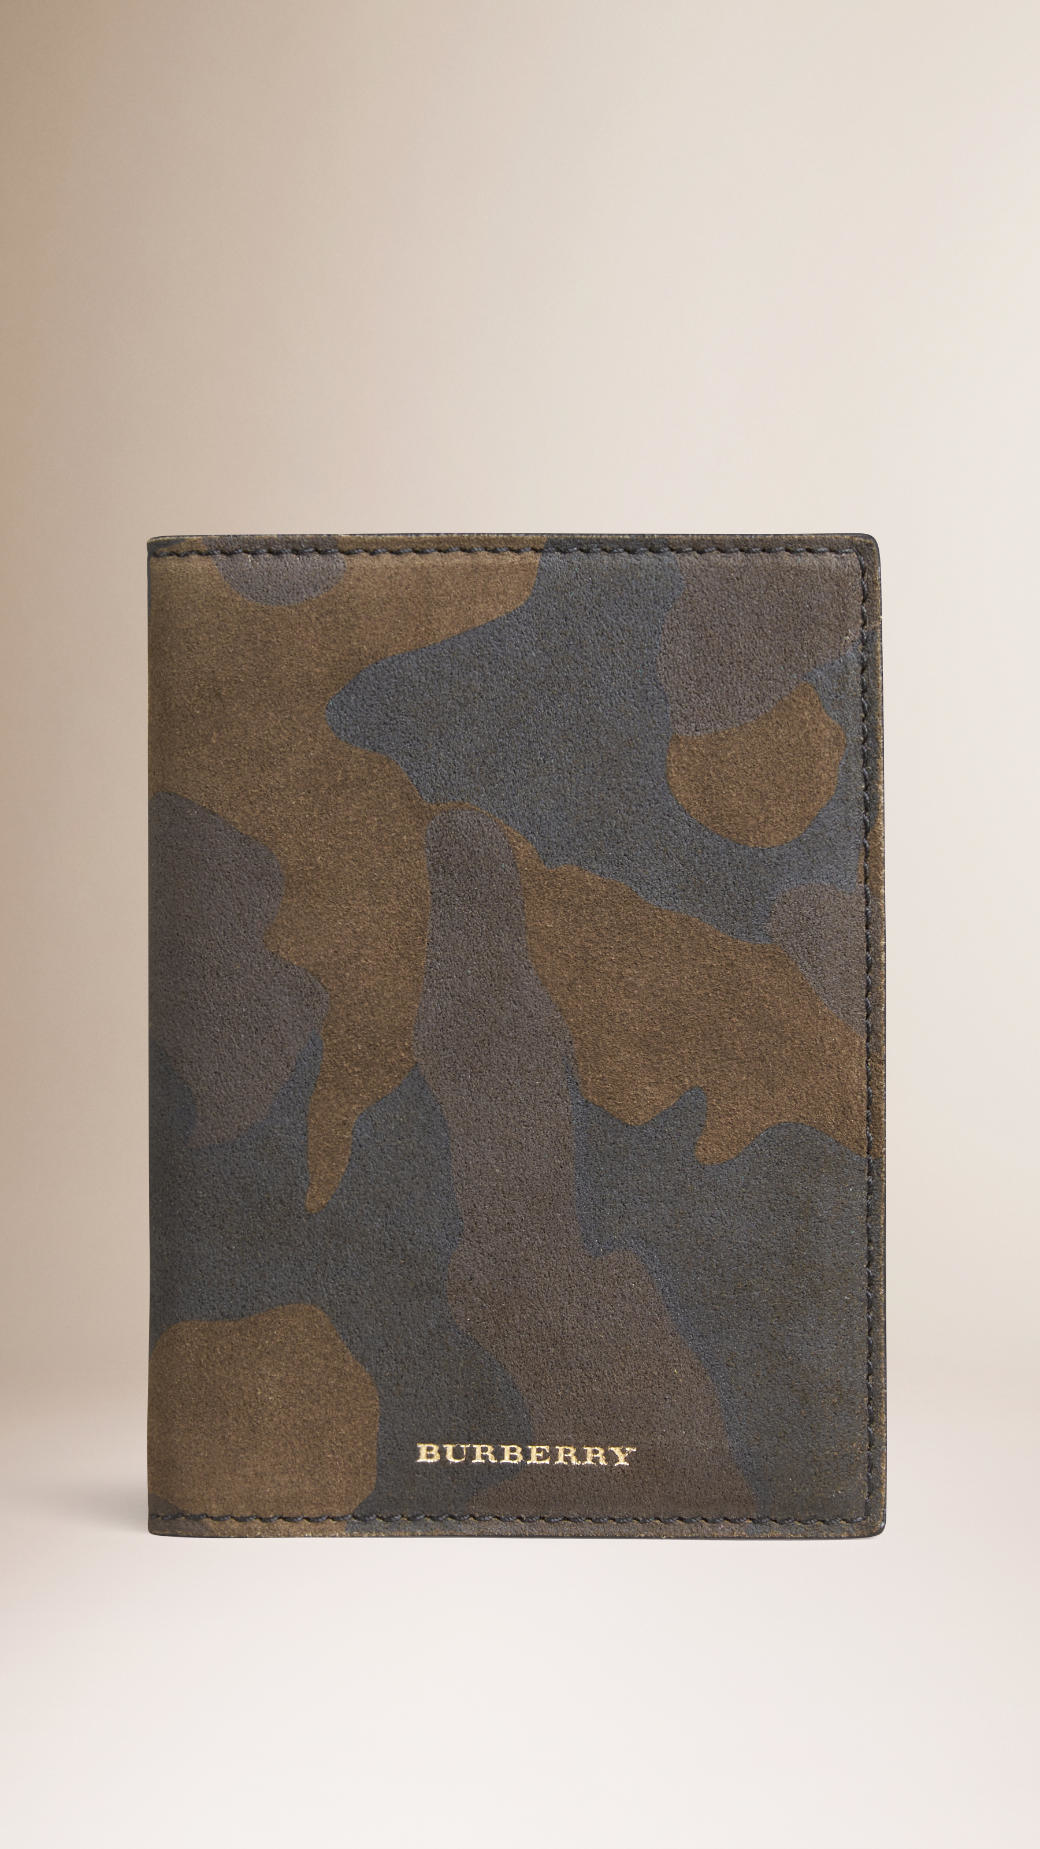 Burberry Camouflage Card Holder